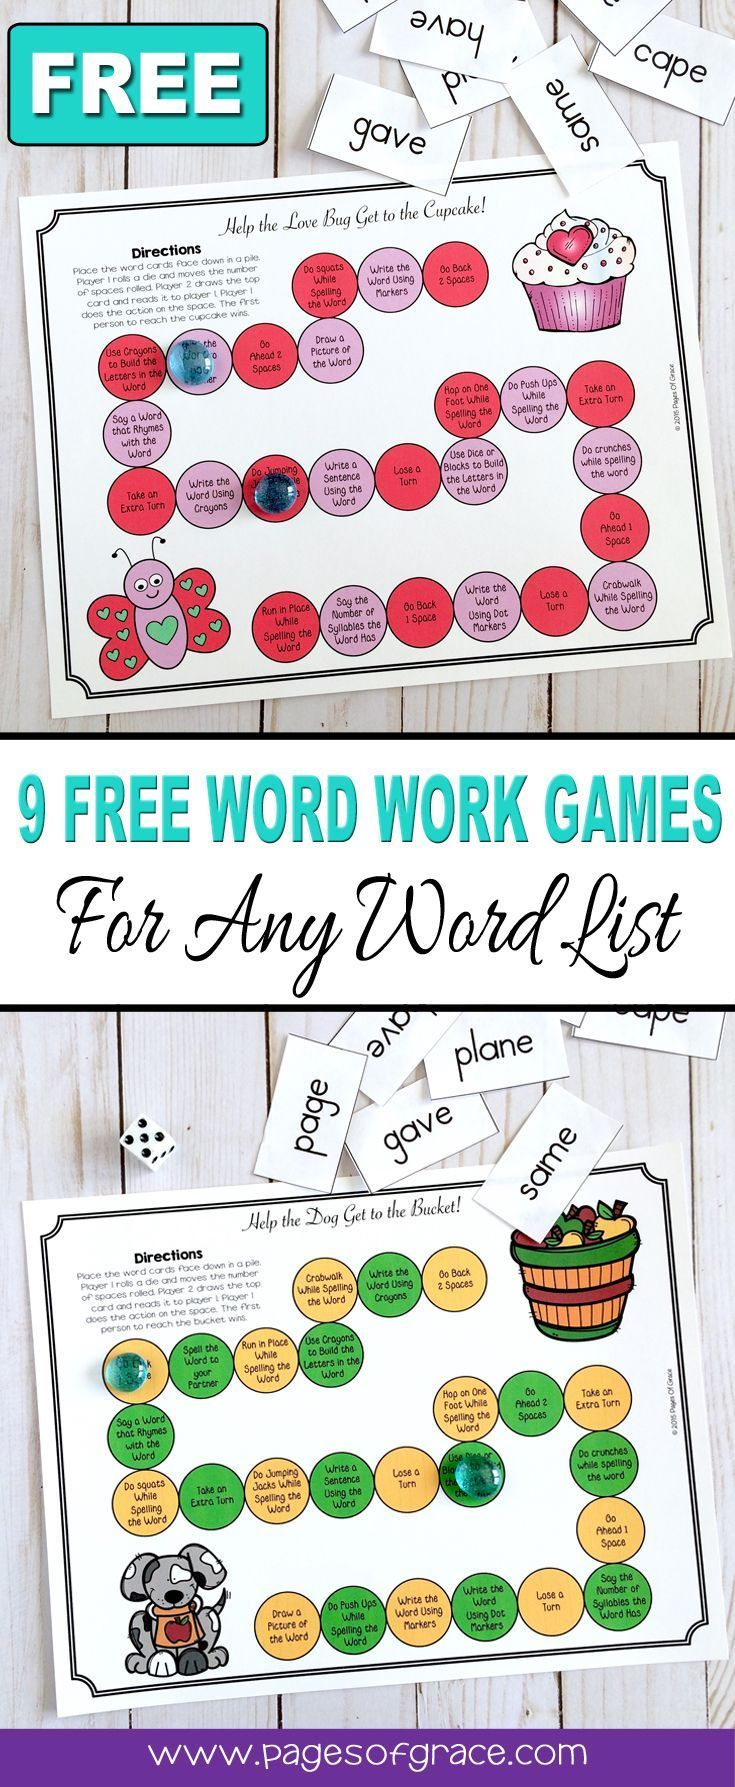 Help your students master any word list and have some